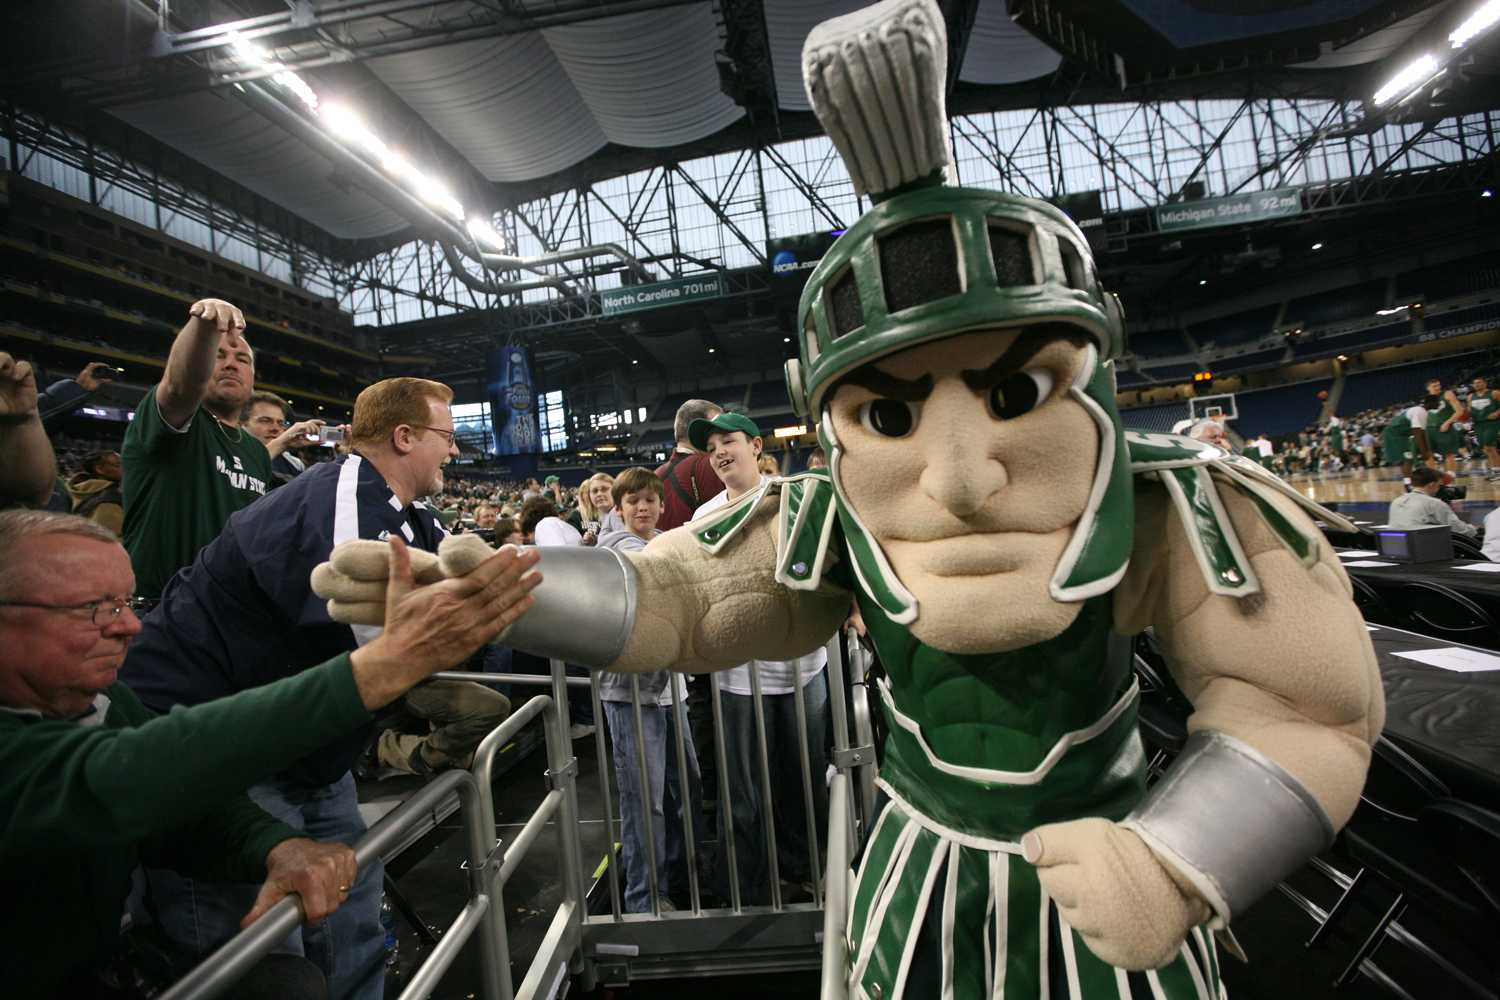 Michigan State mascot Sparty high fives fans as they wait for the players to come onto the court for practice for the Final Four at Ford Field in Detroit in 2009. (Andre J. Jackson/Detroit Free Press/MCT)